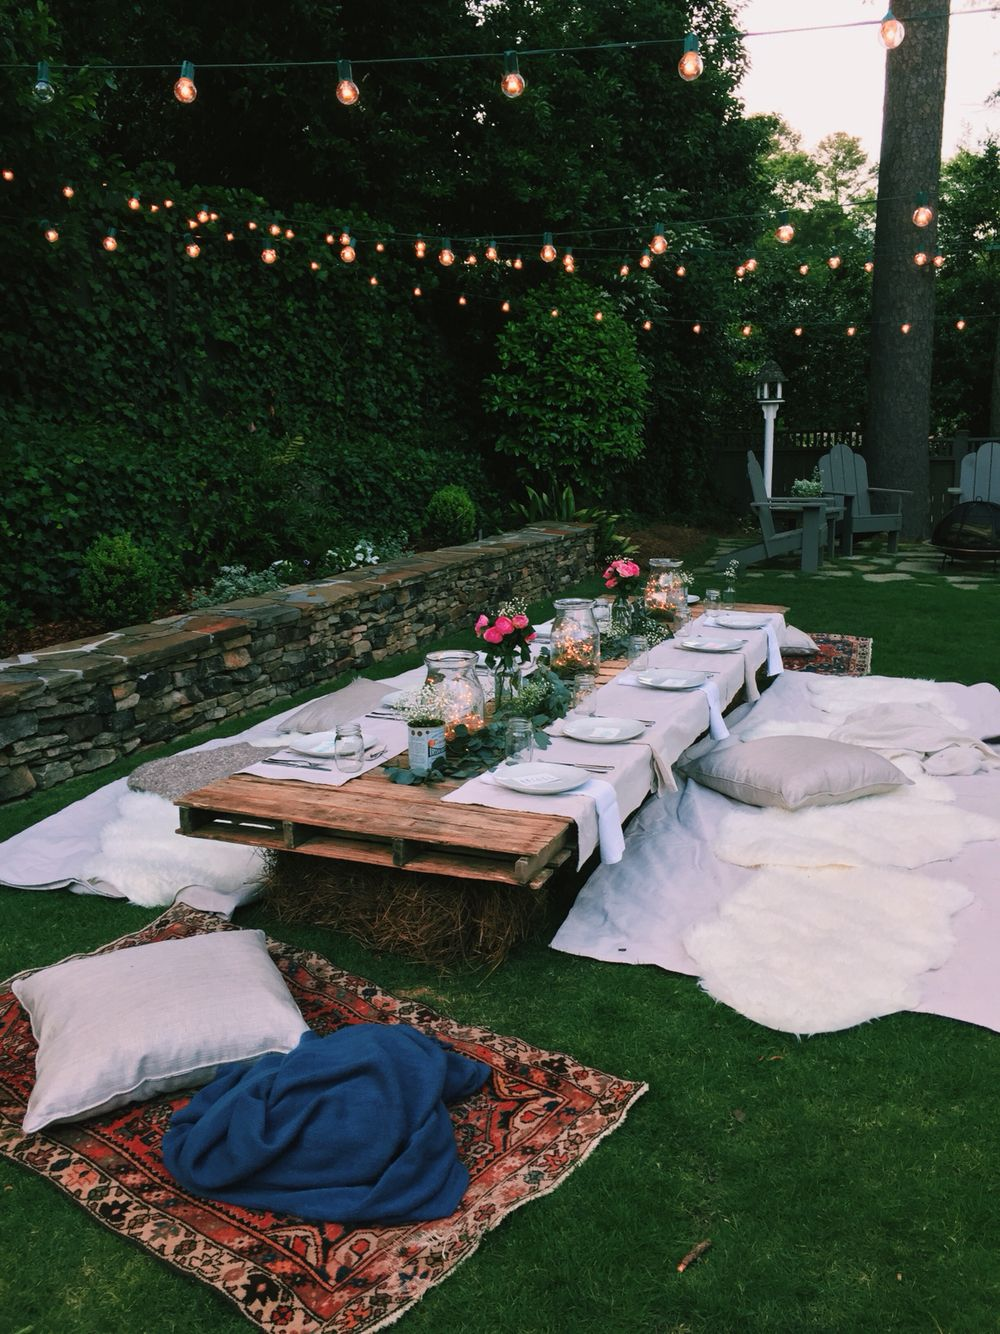 Pool Party Ideas For Adults Night